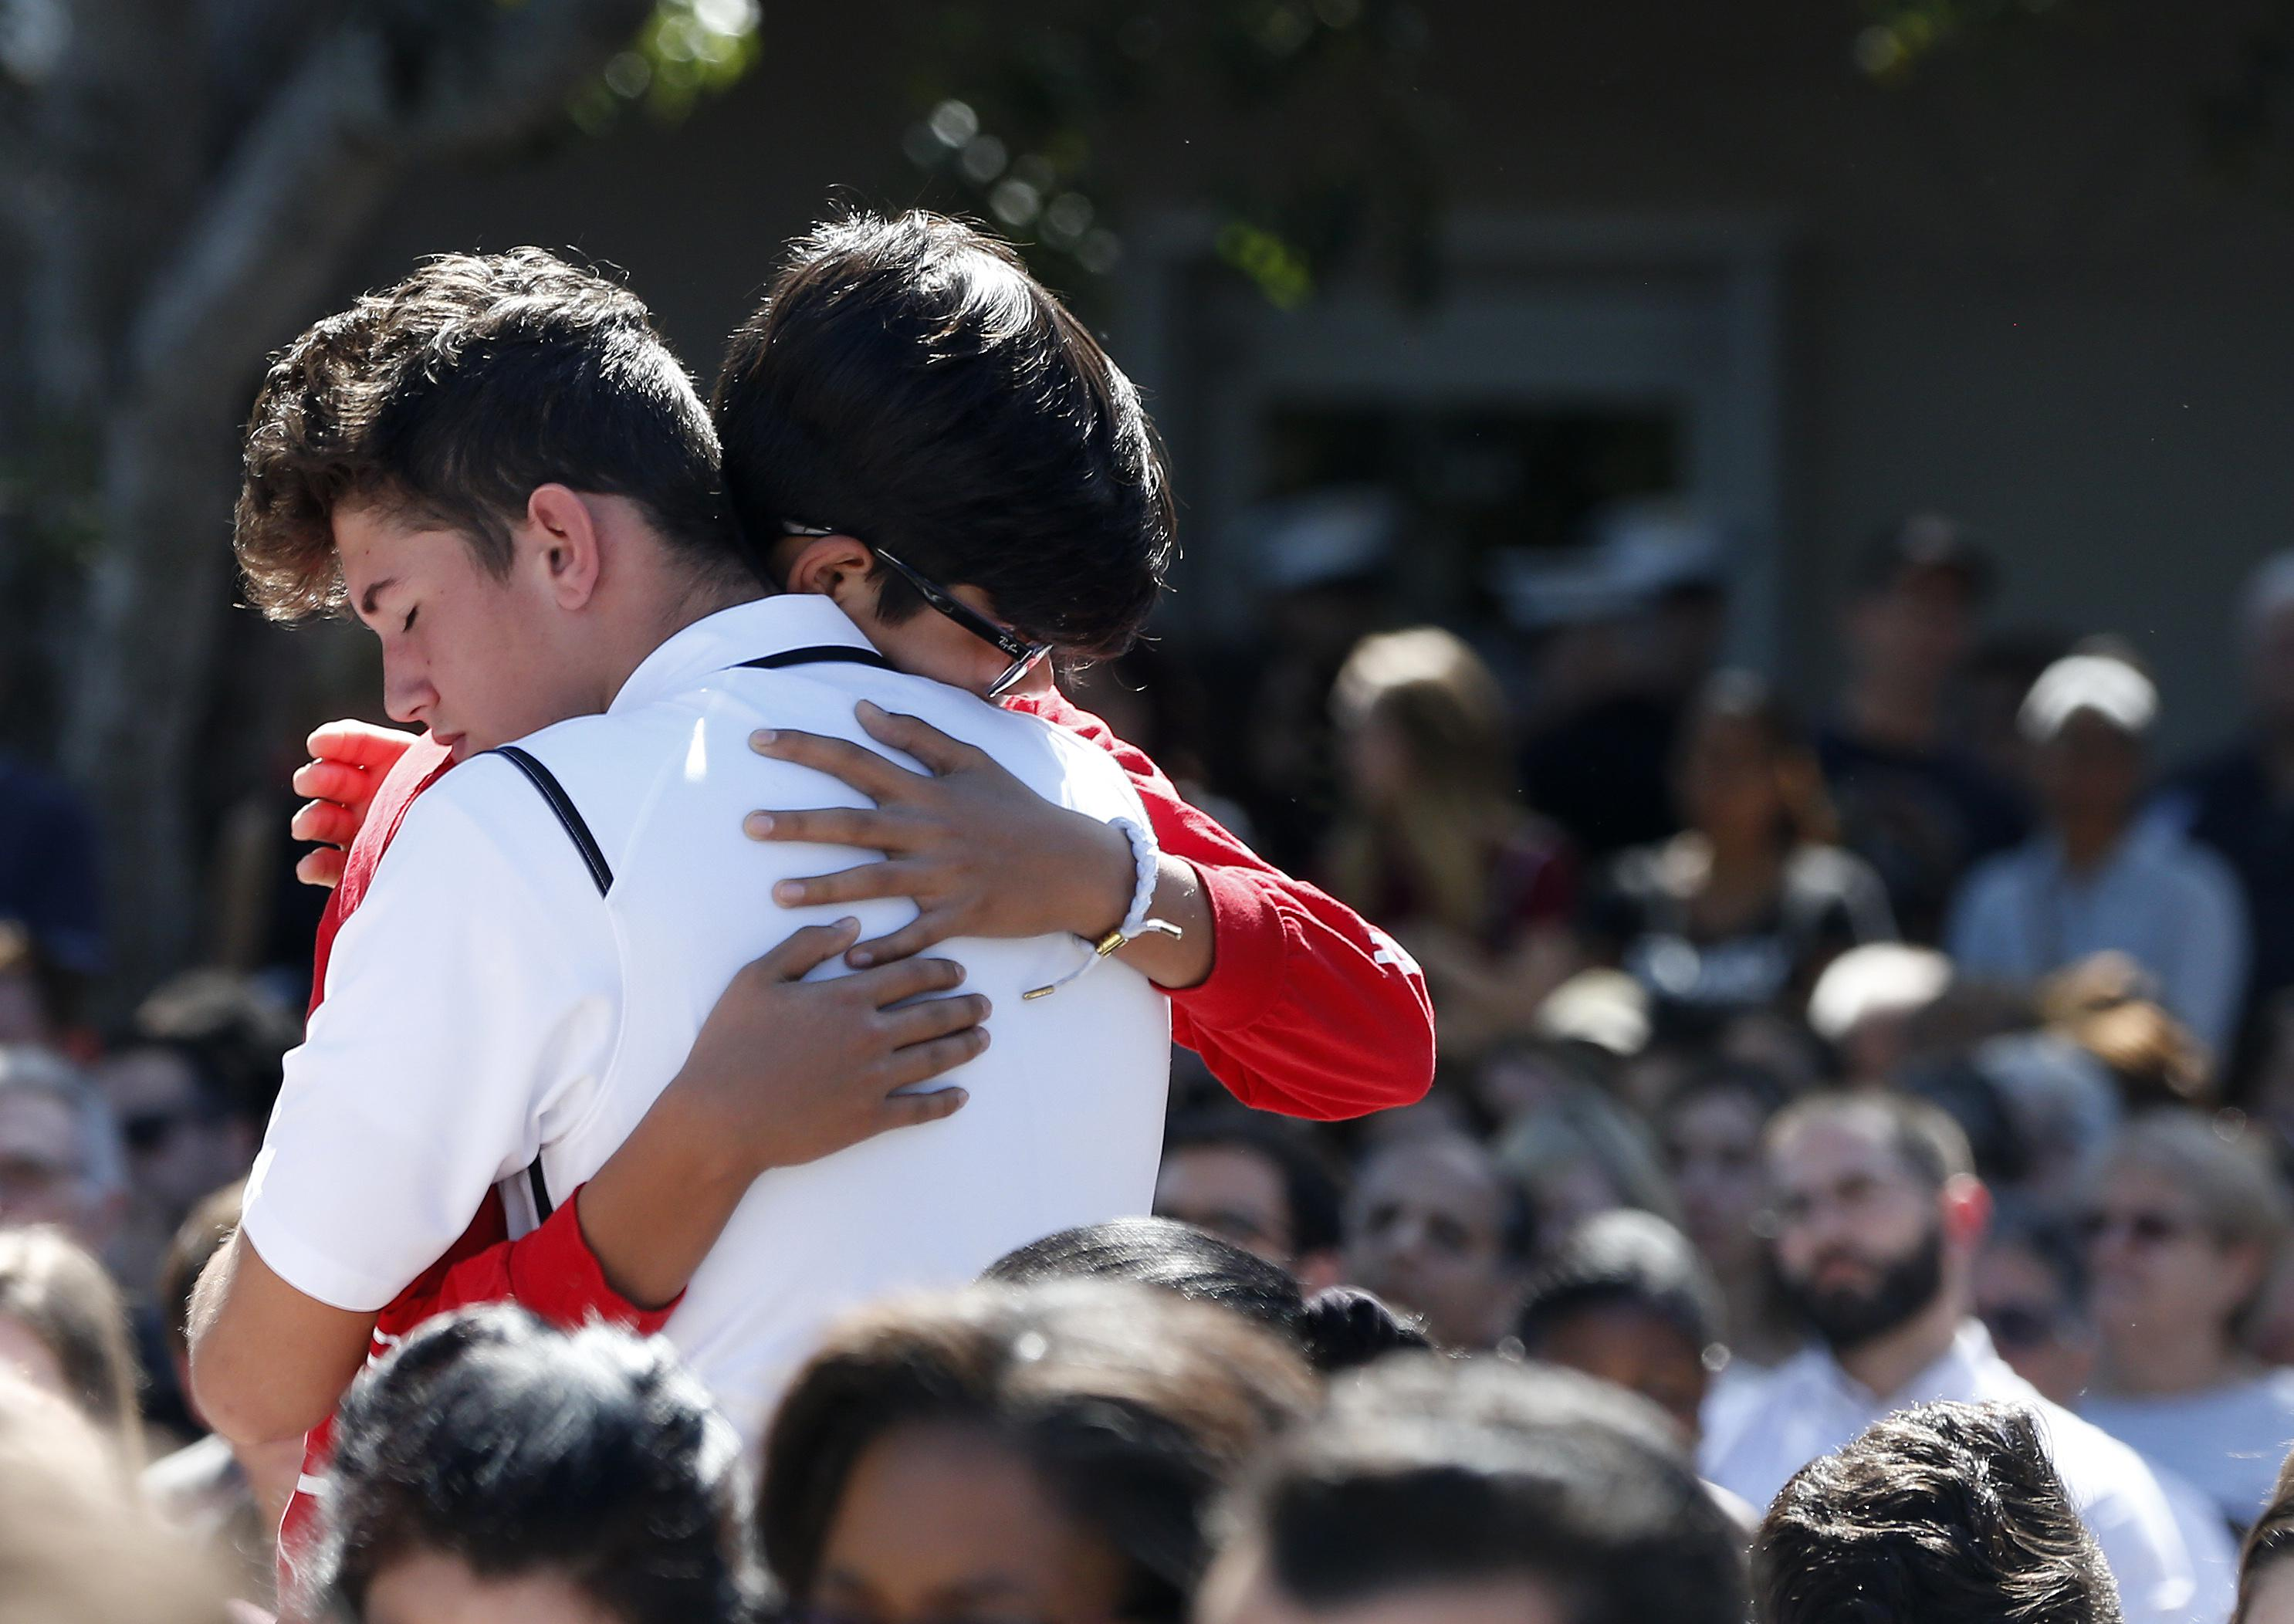 Mourners hug during a prayer vigil for the victims of the Marjory Stoneman Douglas High School shooting at Parkridge Church in Coral Springs, Florida, on Thursday.